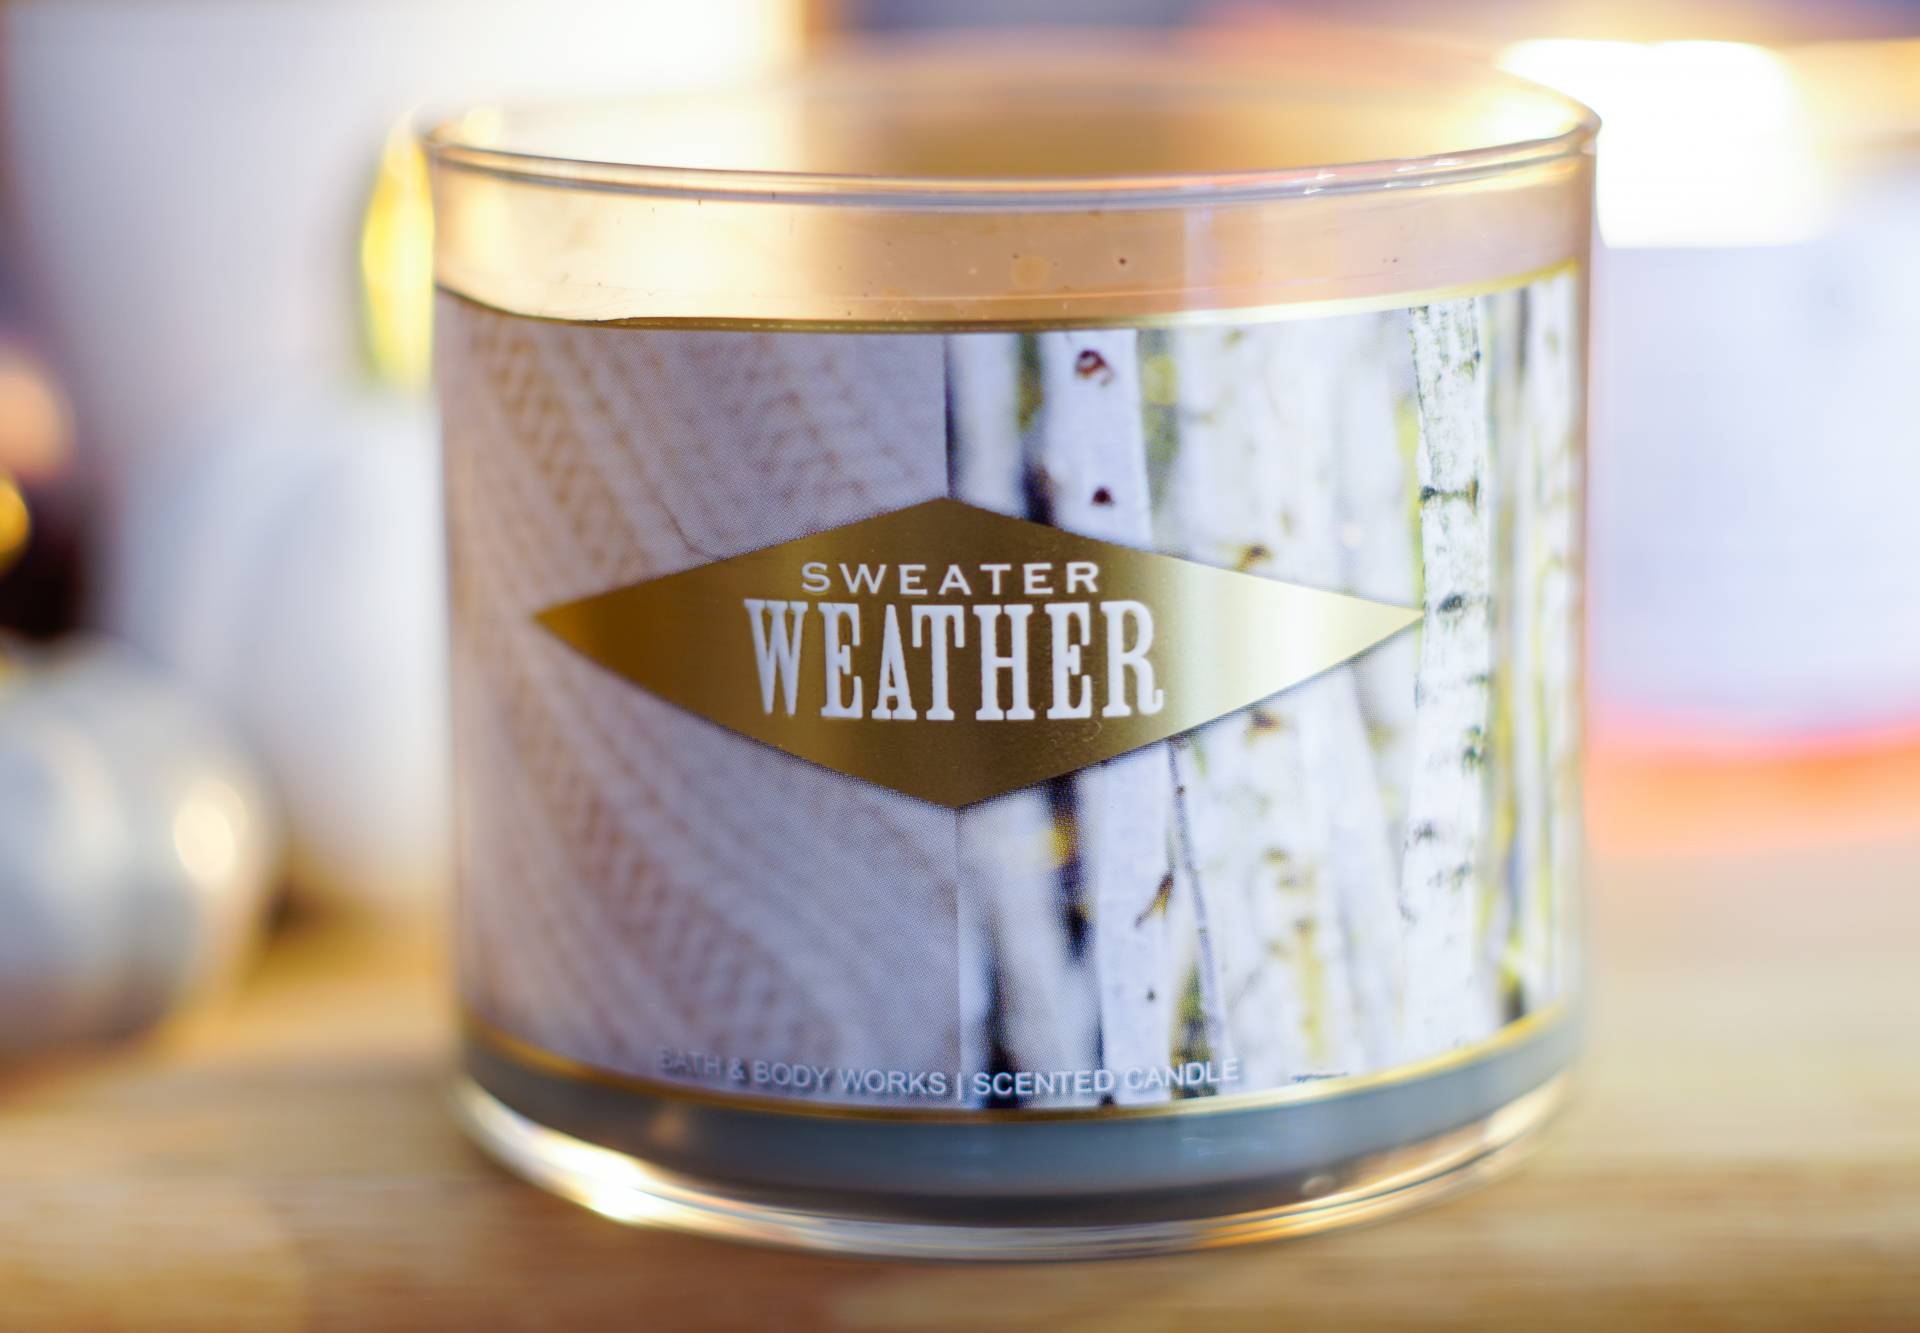 bath and body works bbw sweater weather candle review